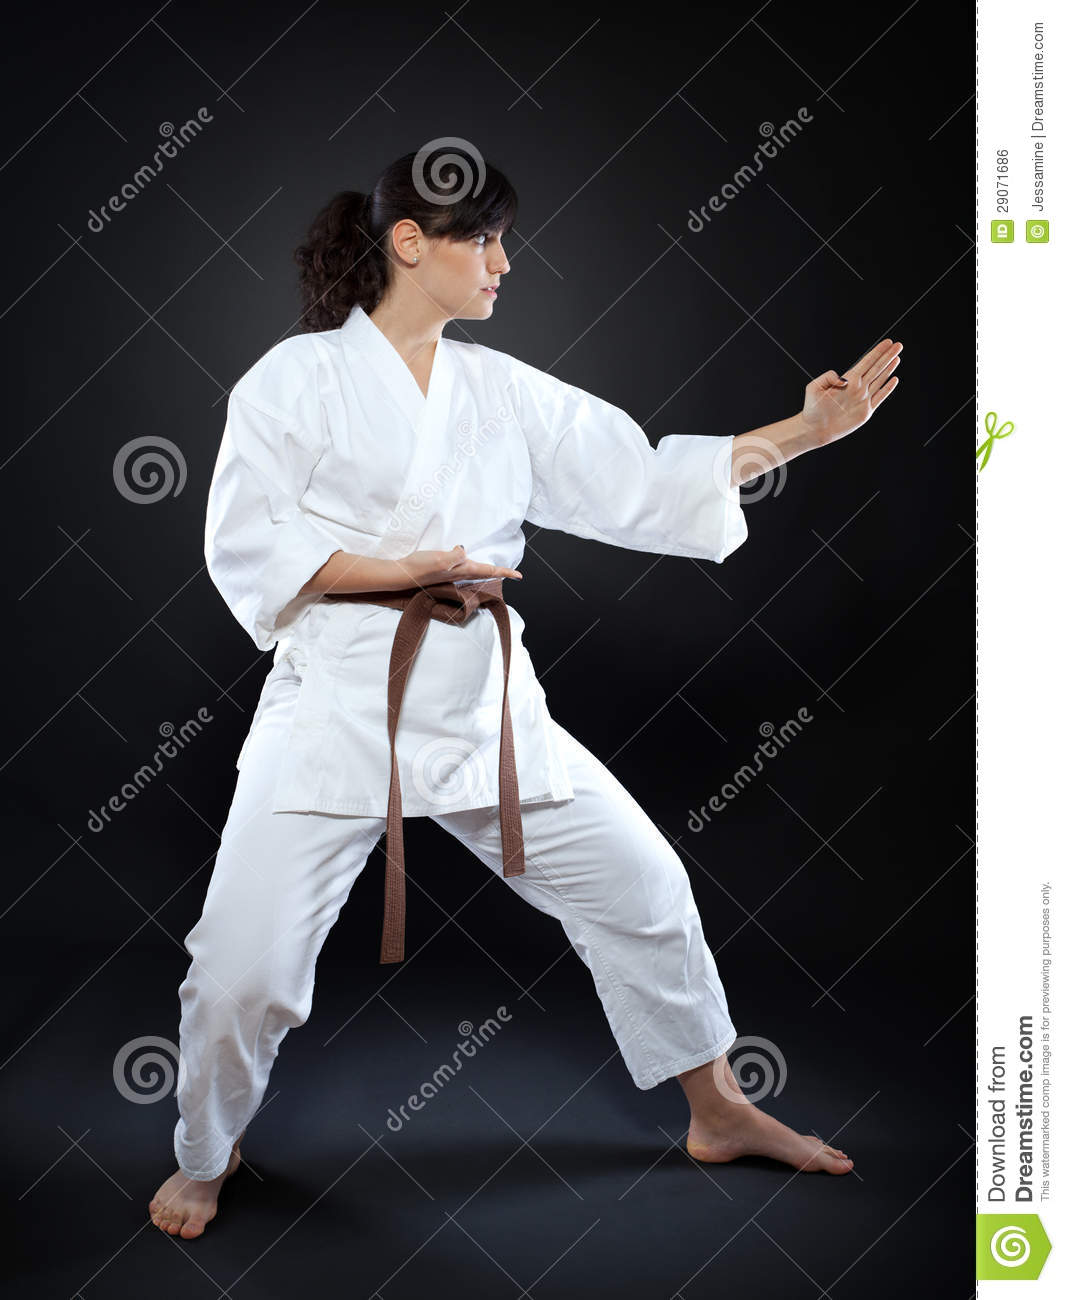 Sexy karate woman sex photos